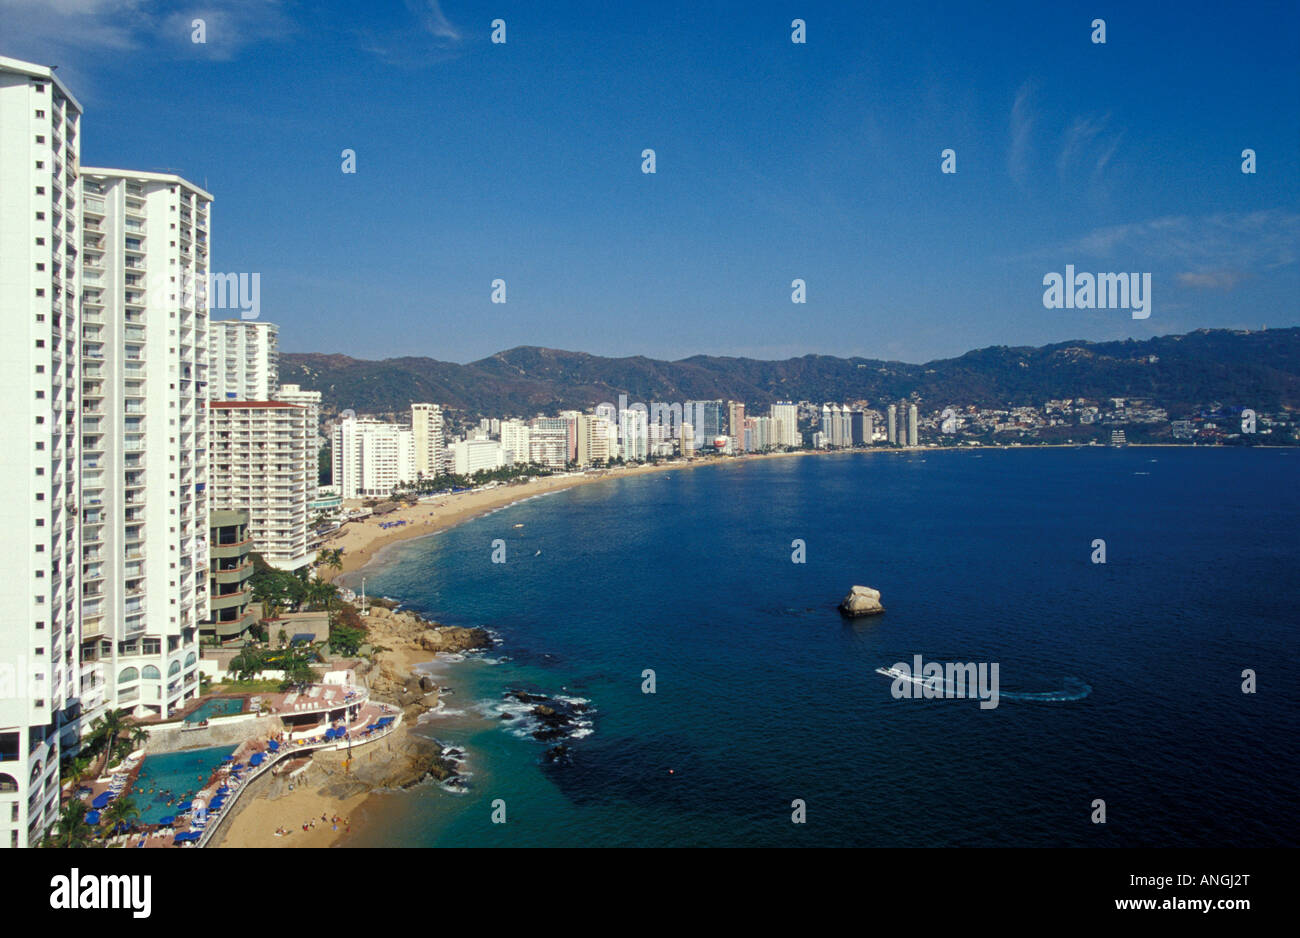 modern-high-rise-hotels-lining-acapulco-